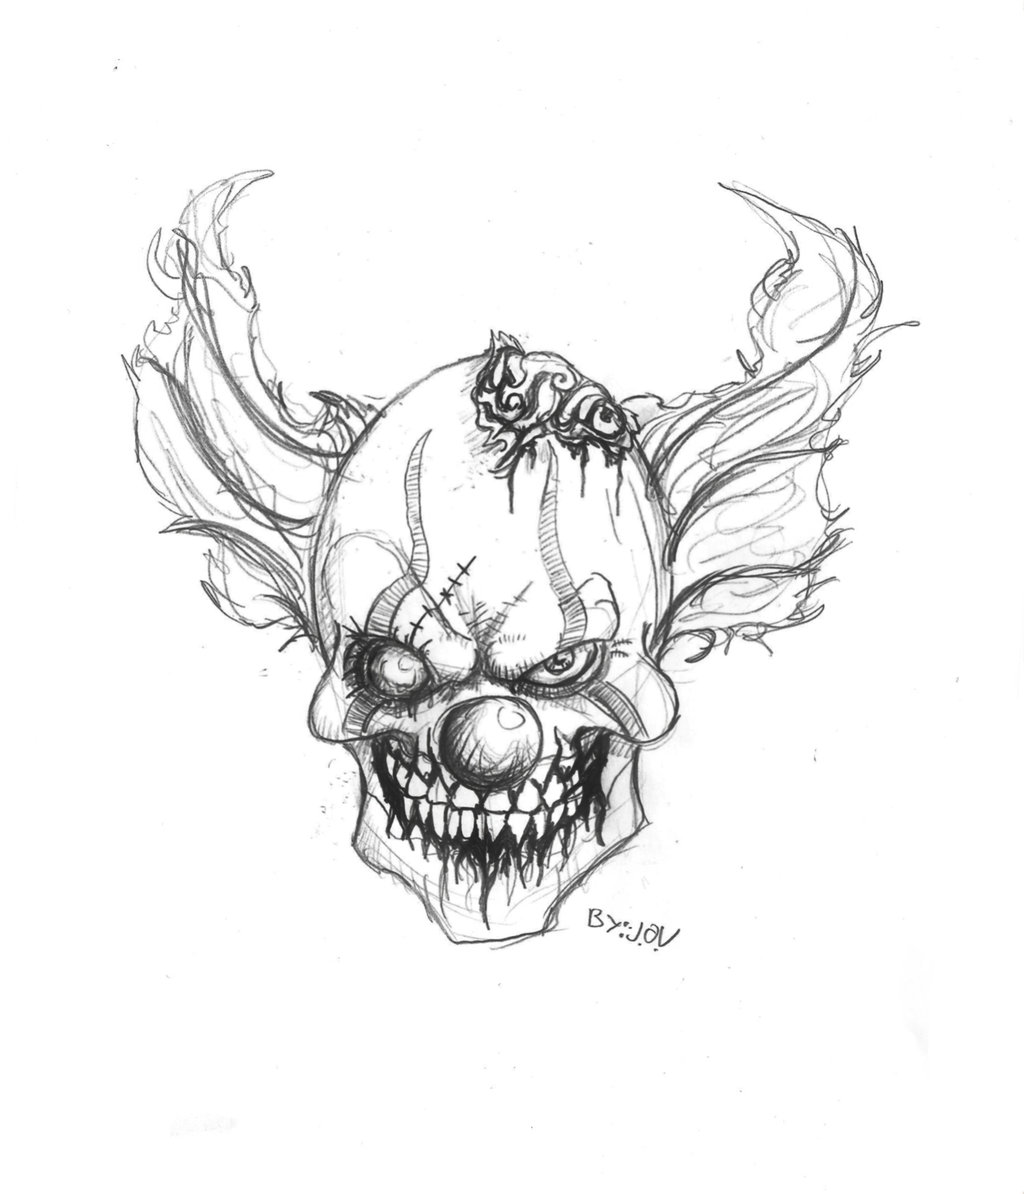 gangster scary clown coloring pages gangster drawing pictures at getdrawings free download gangster clown scary coloring pages